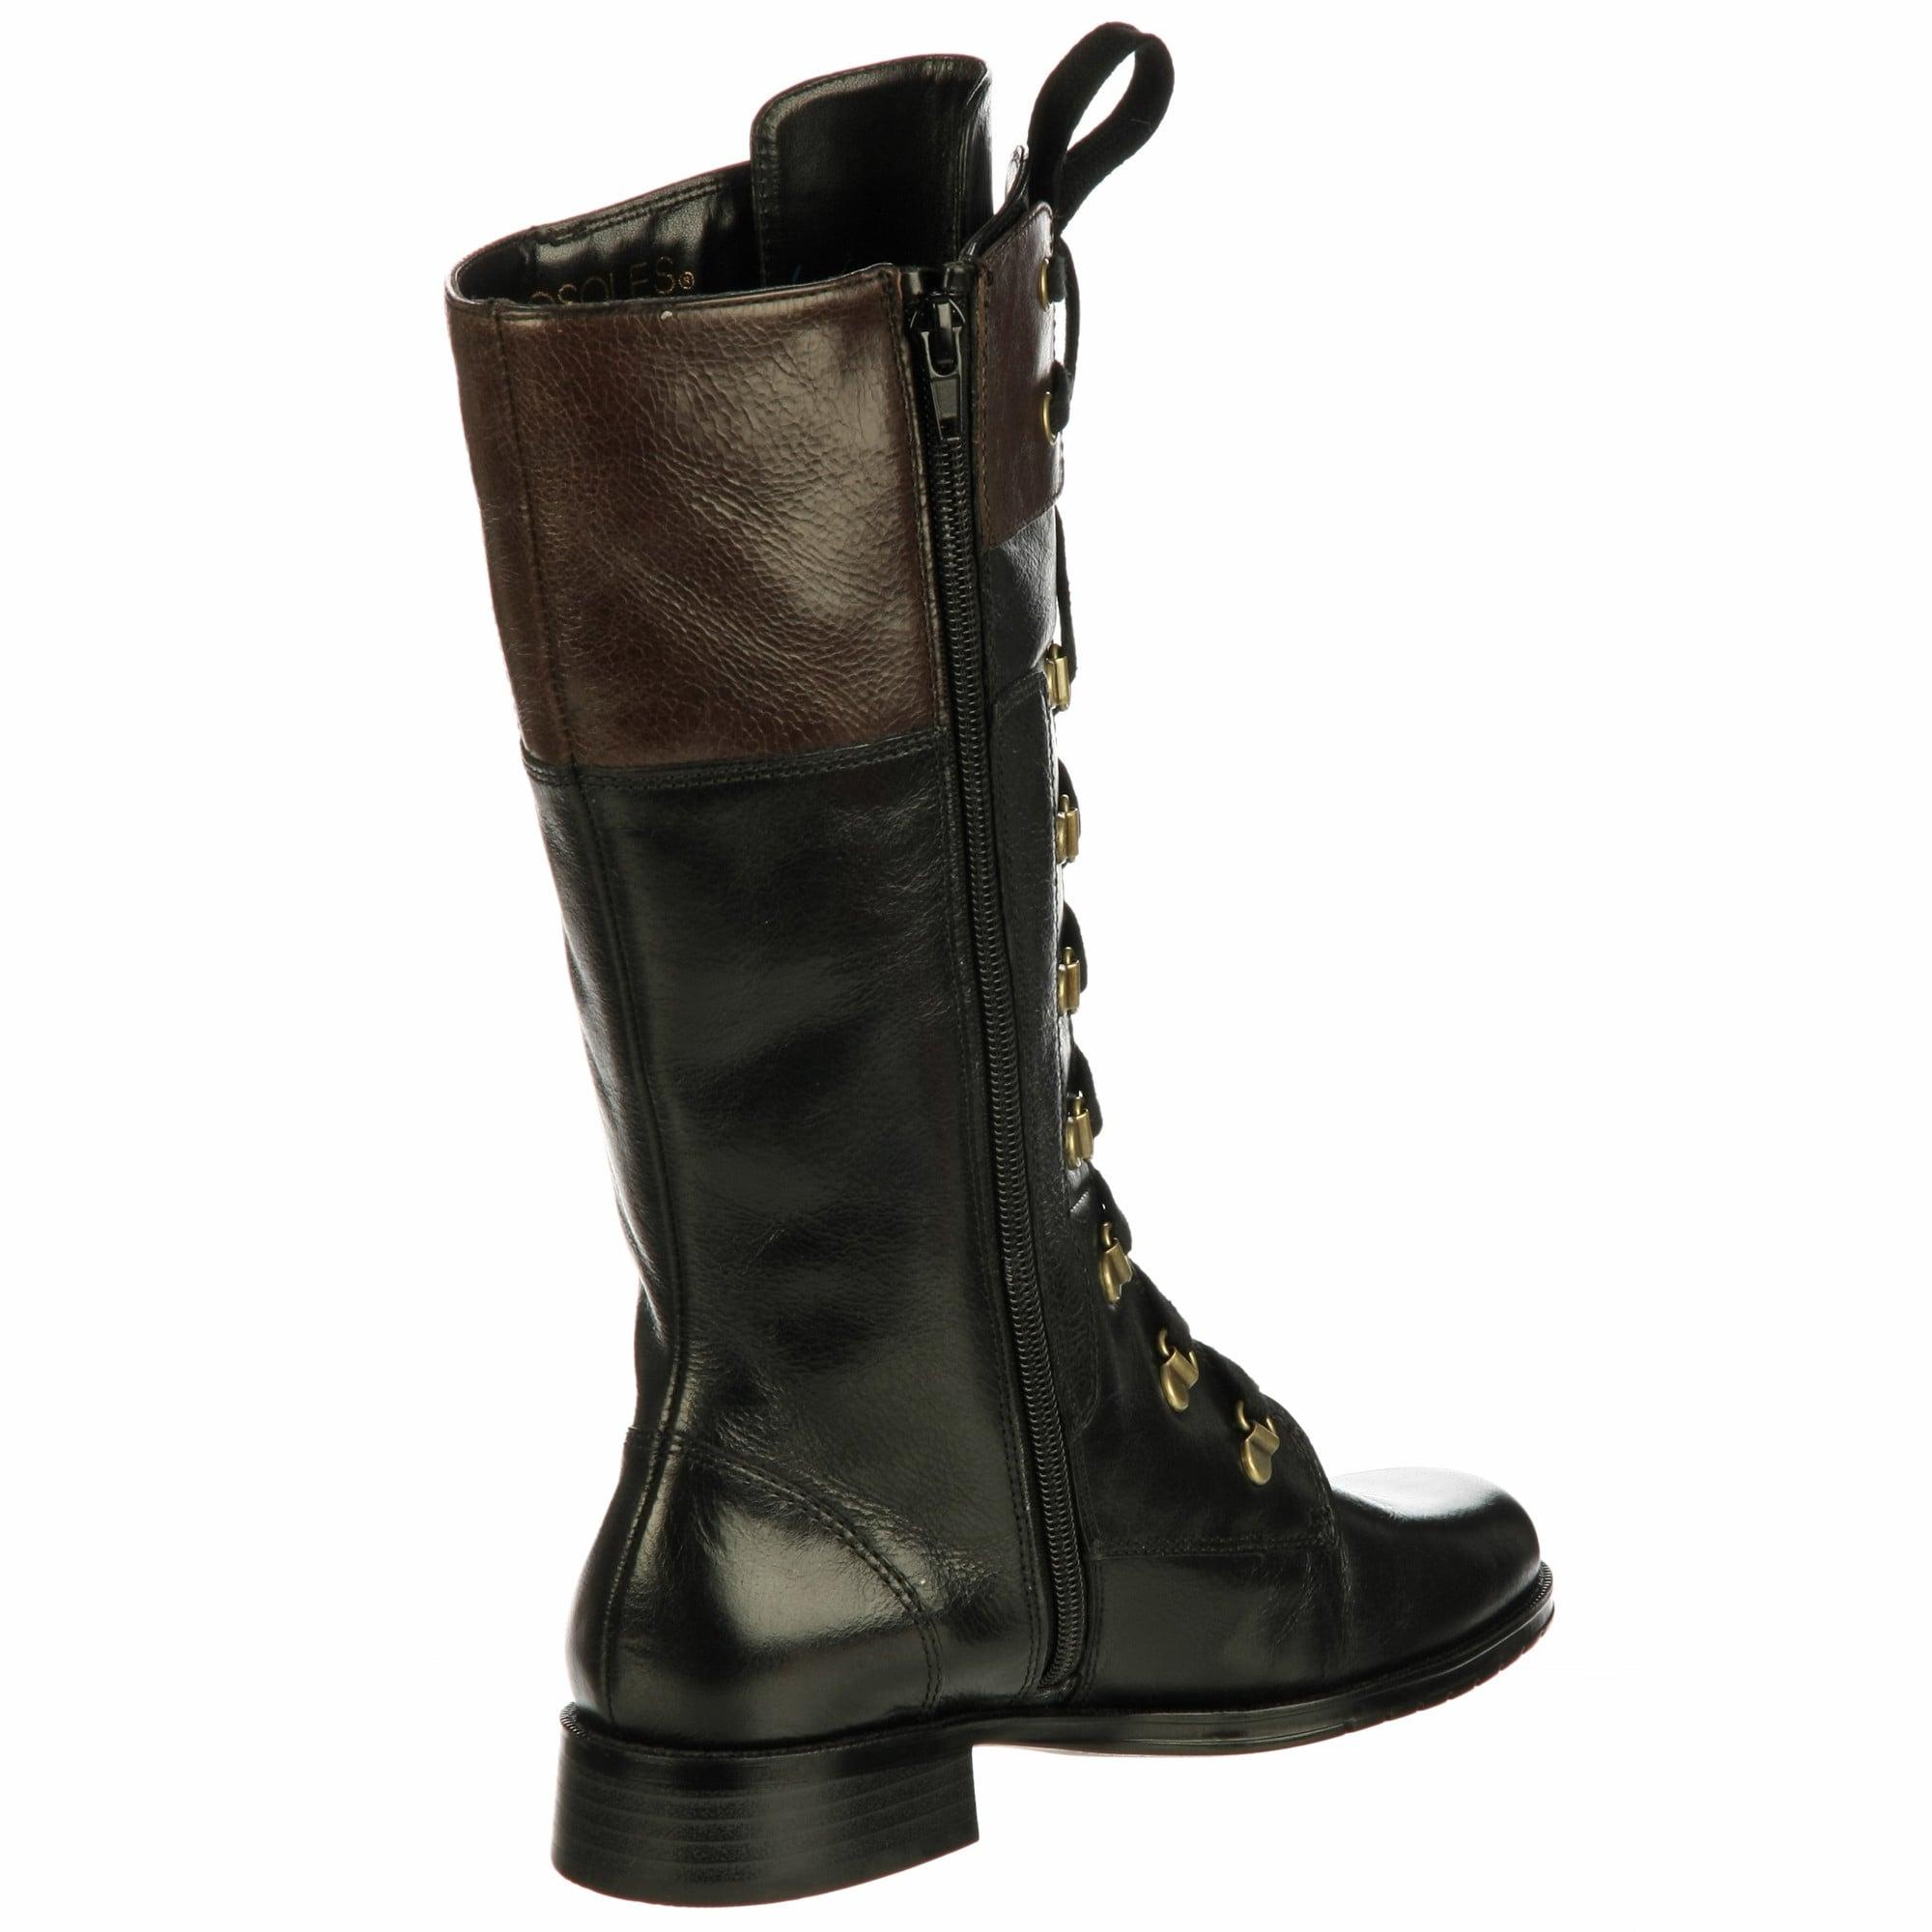 e97cda503830d Shop Aerosoles Women's 'Joyride' Black Lace-up Boots FINAL SALE - Free  Shipping Today - Overstock - 6220761